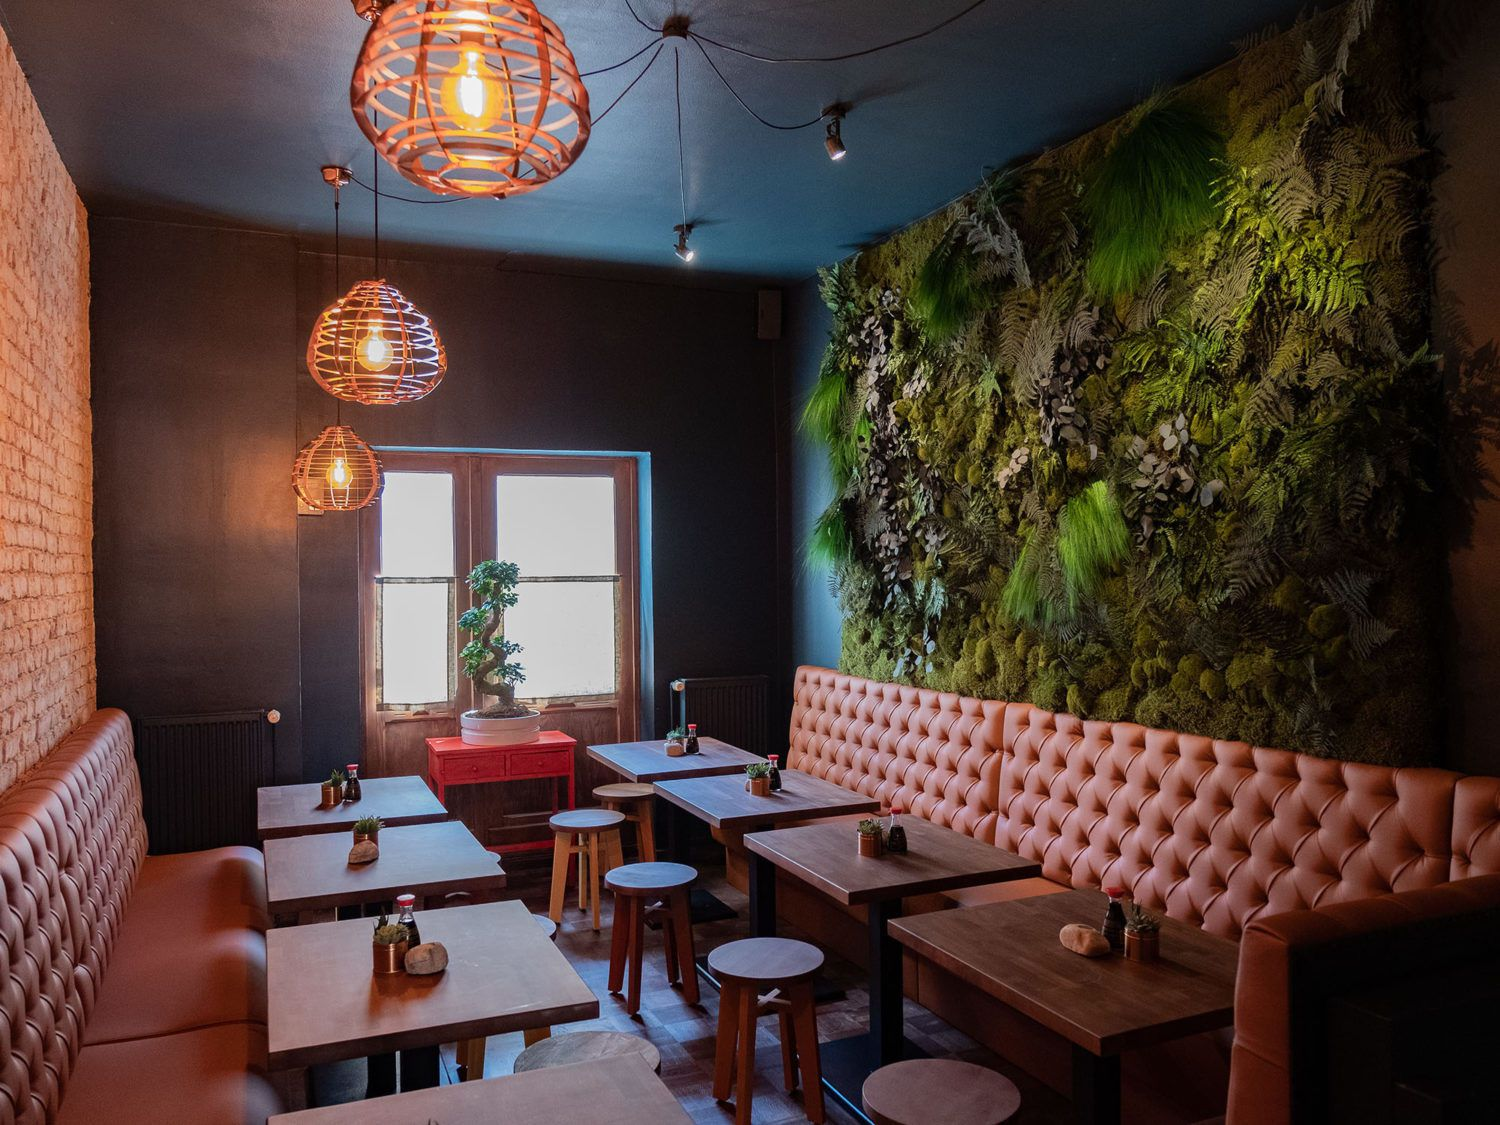 Foodblog About Fuel, Restaurant CHOTTO Berlin, Interieur, Lampen, Mooswand